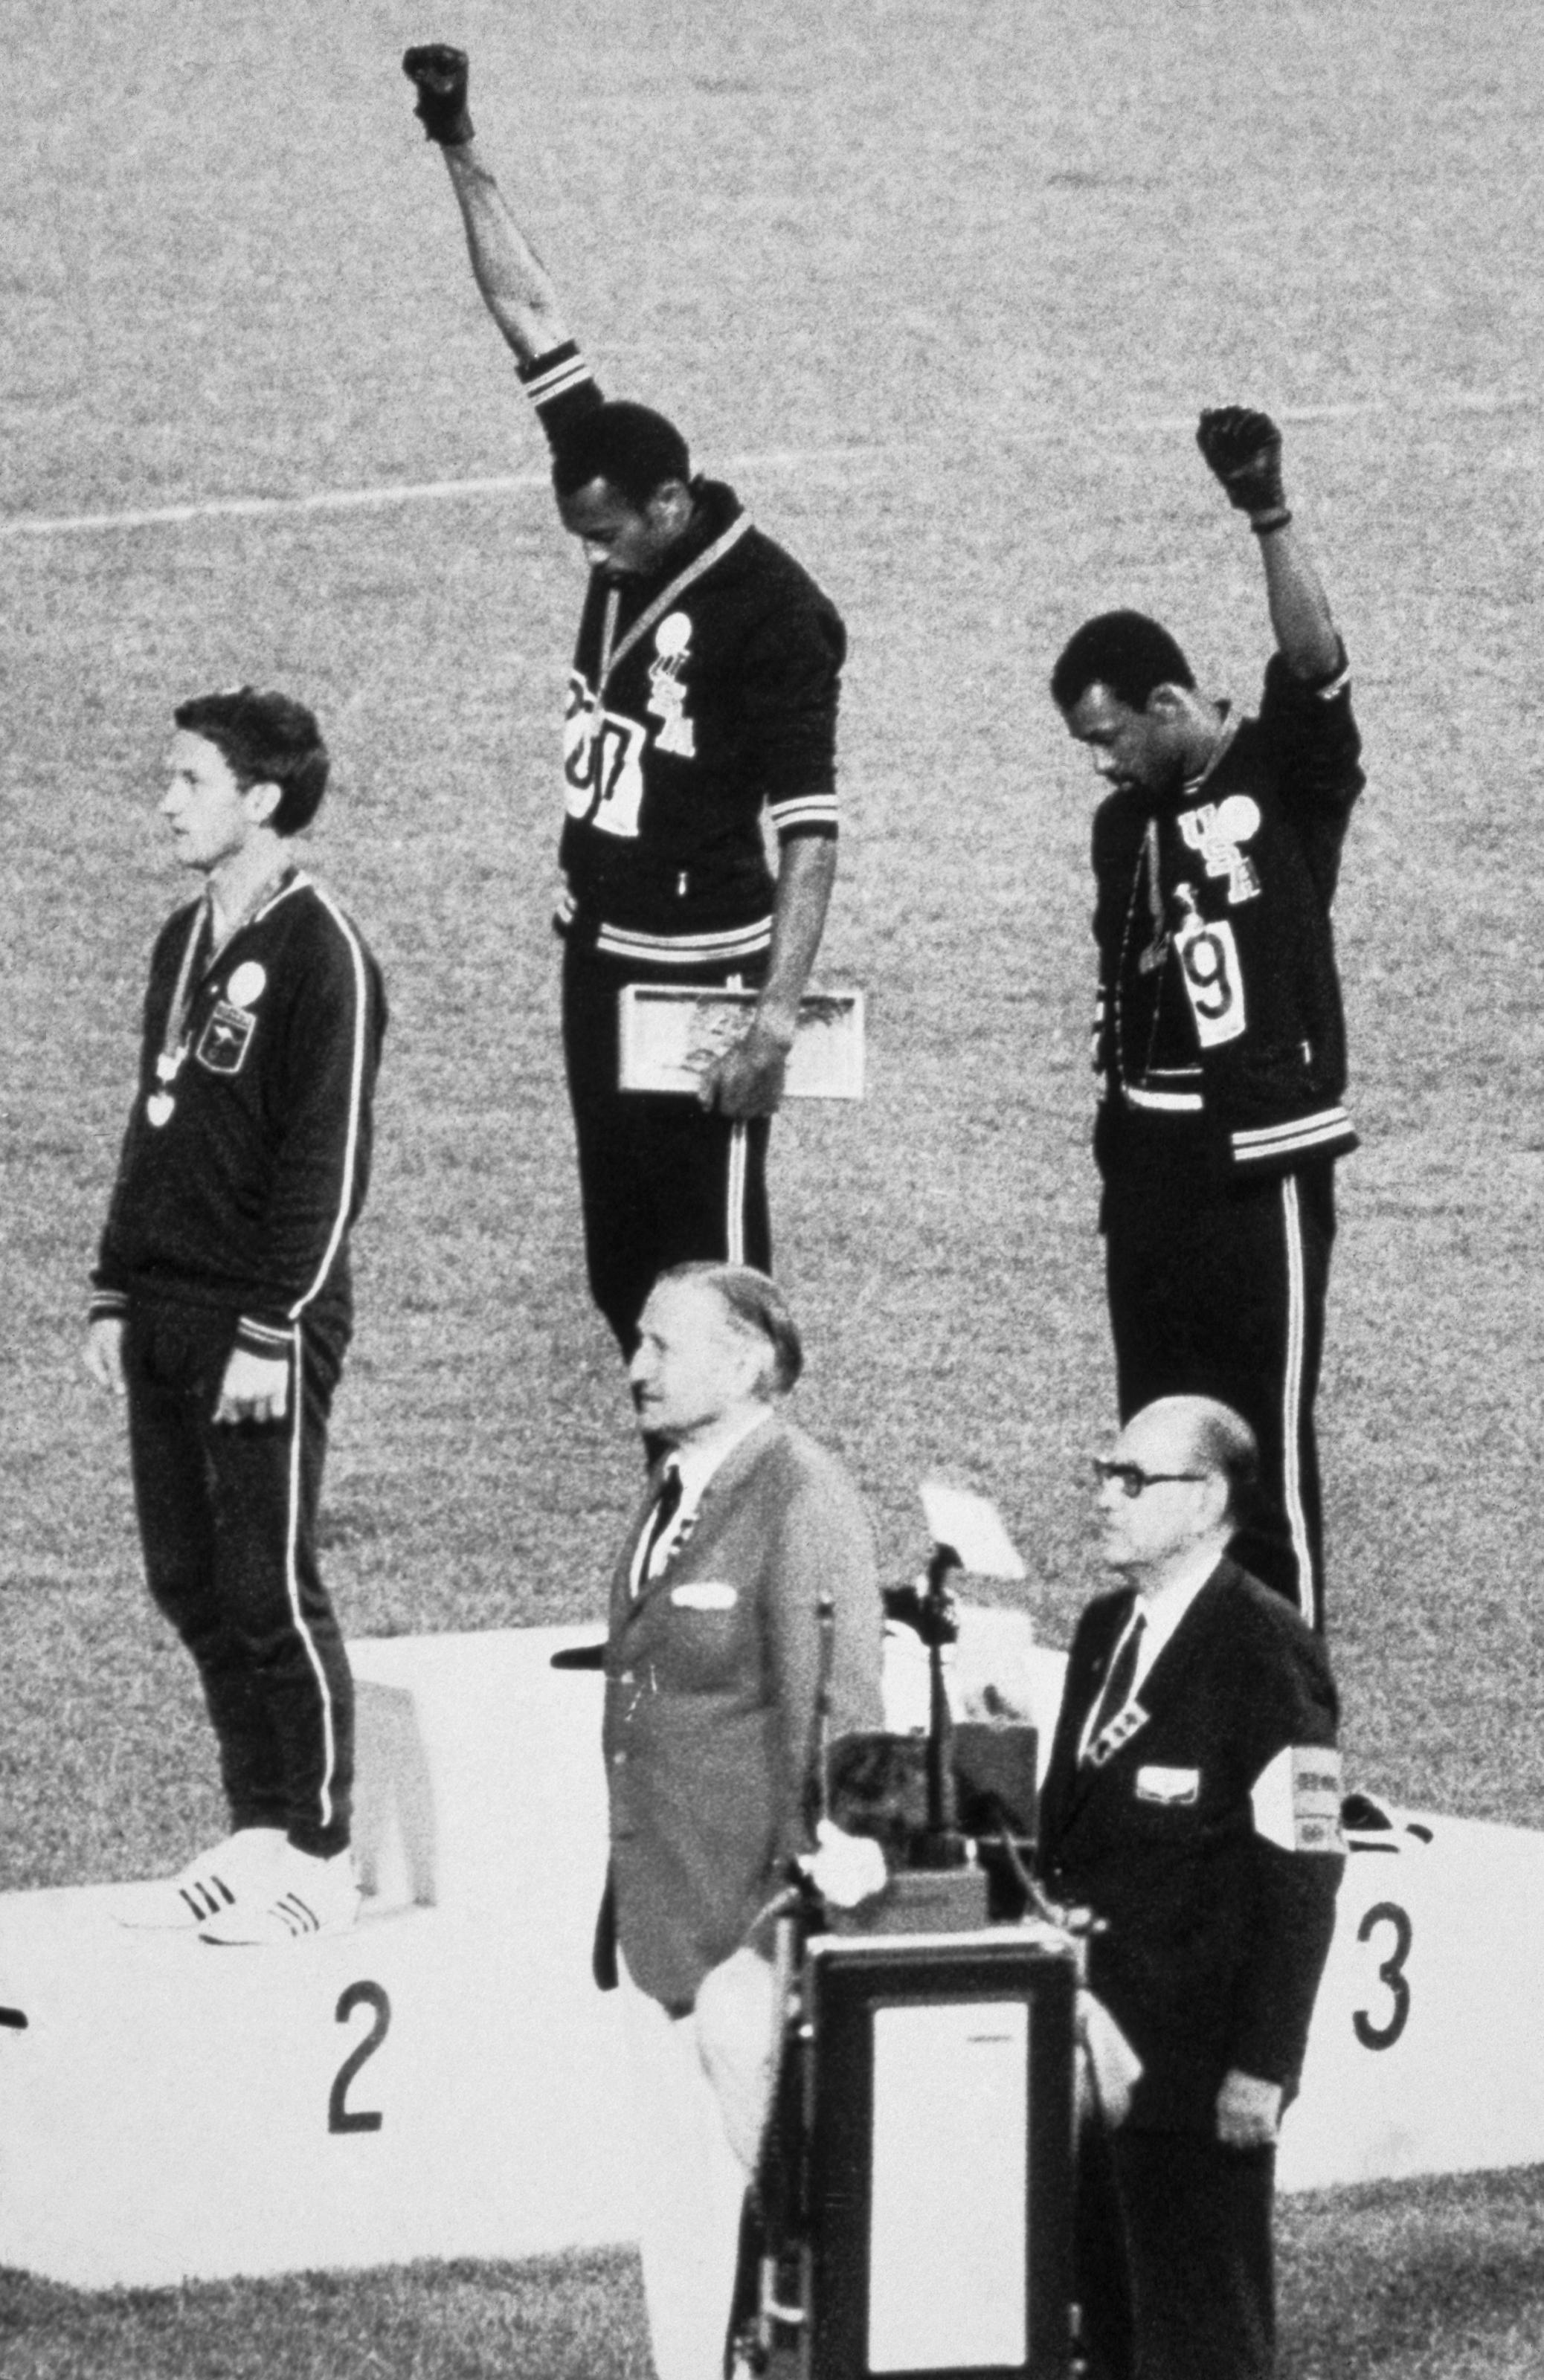 American sprinters Tommie Smith and John Carlos raise their fists as the national anthem plays at the 1968 Olympics.